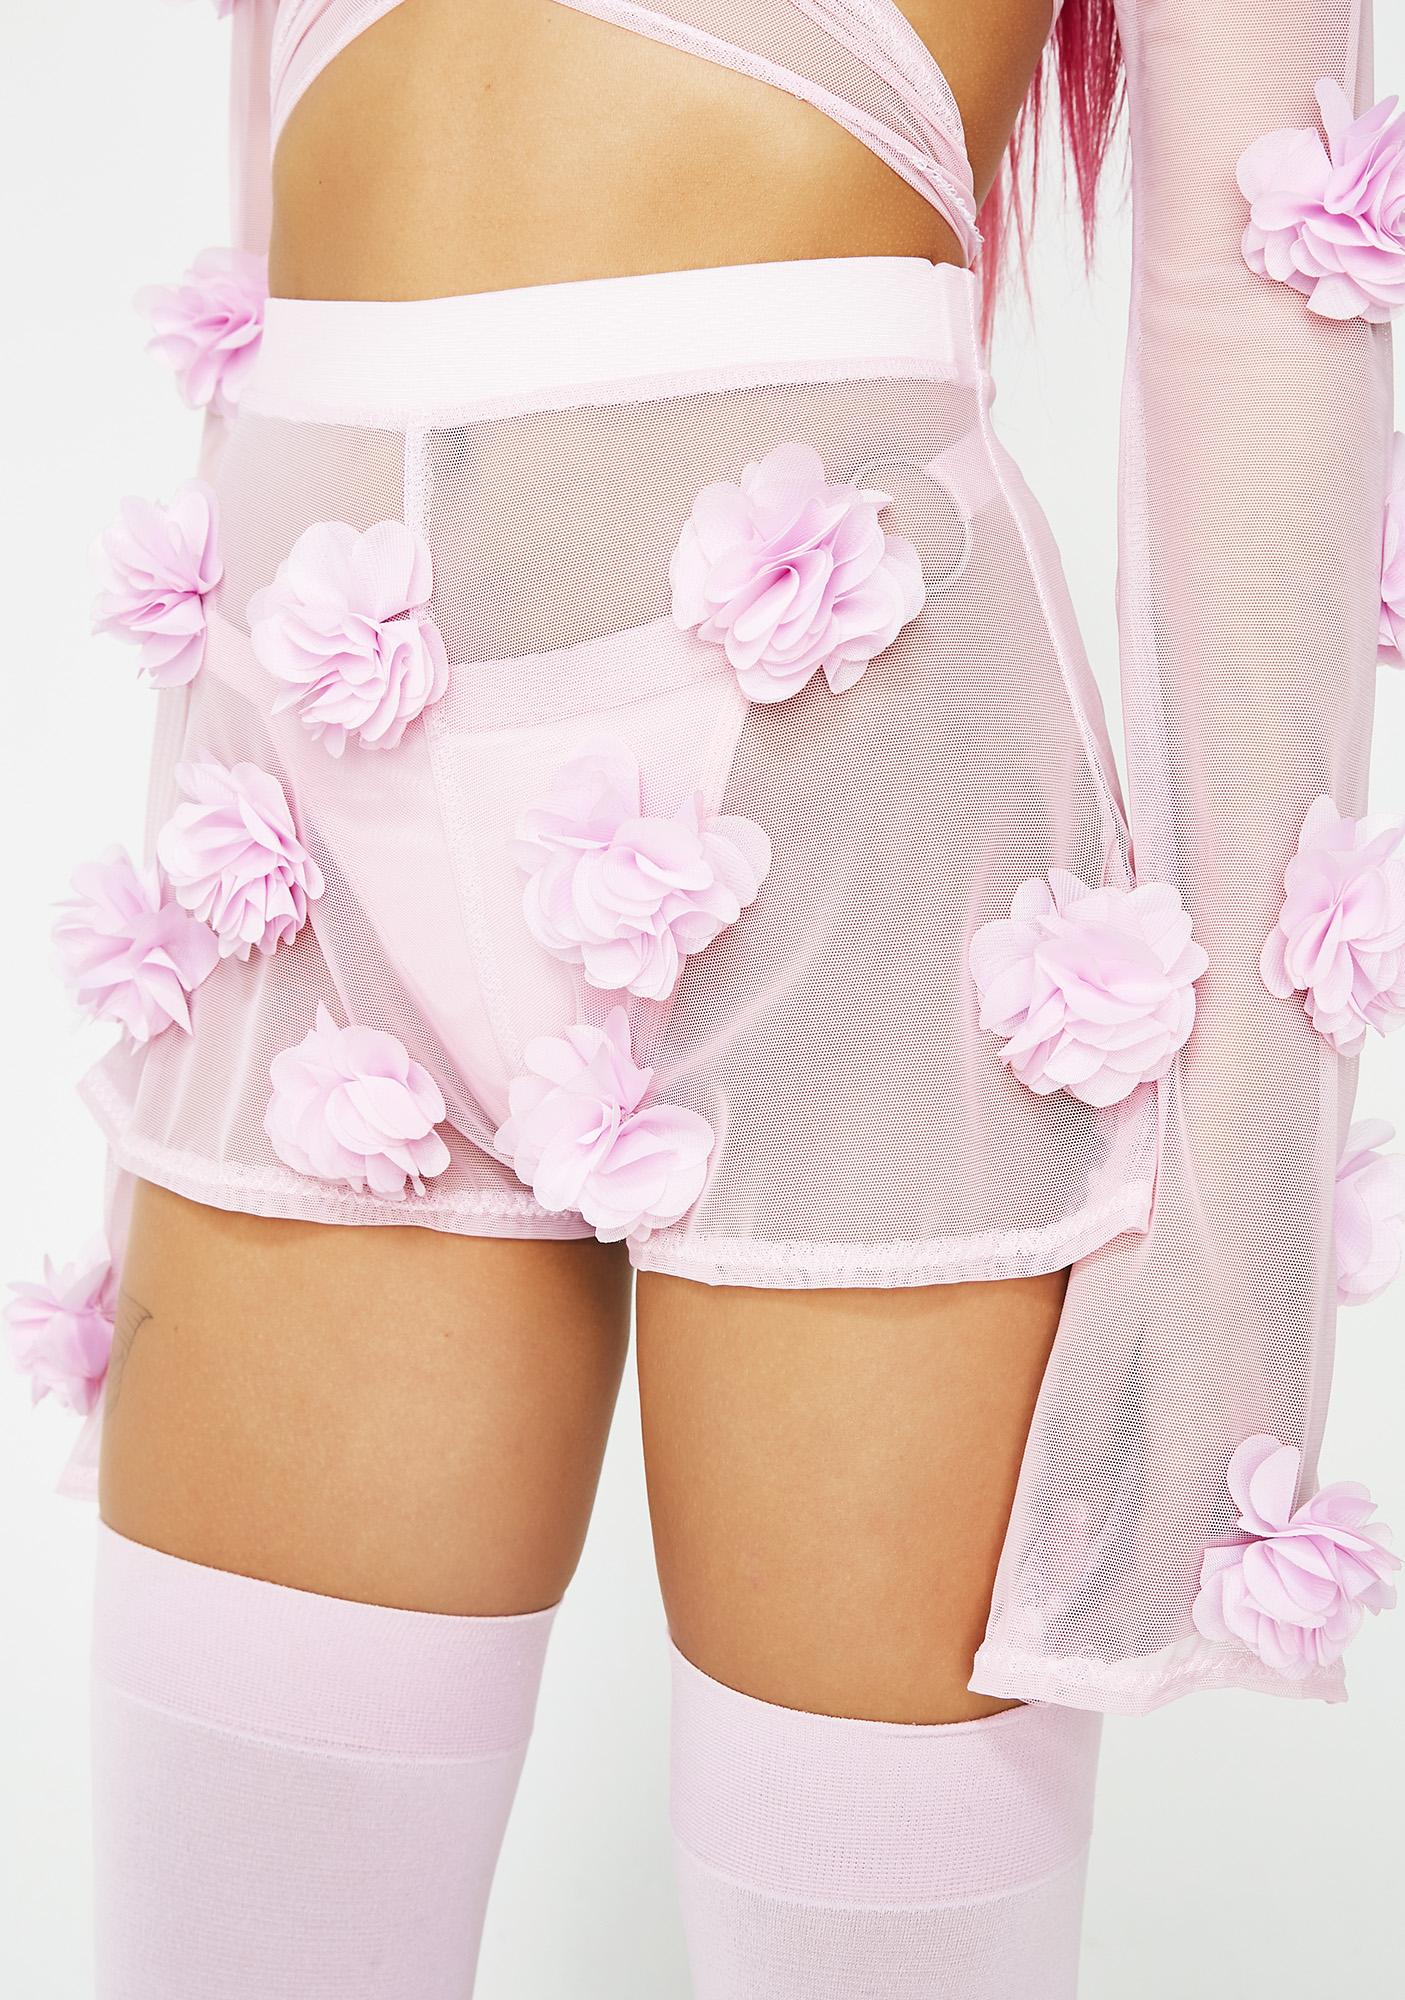 Babydol Clothing Sweet Flower Power Shorts